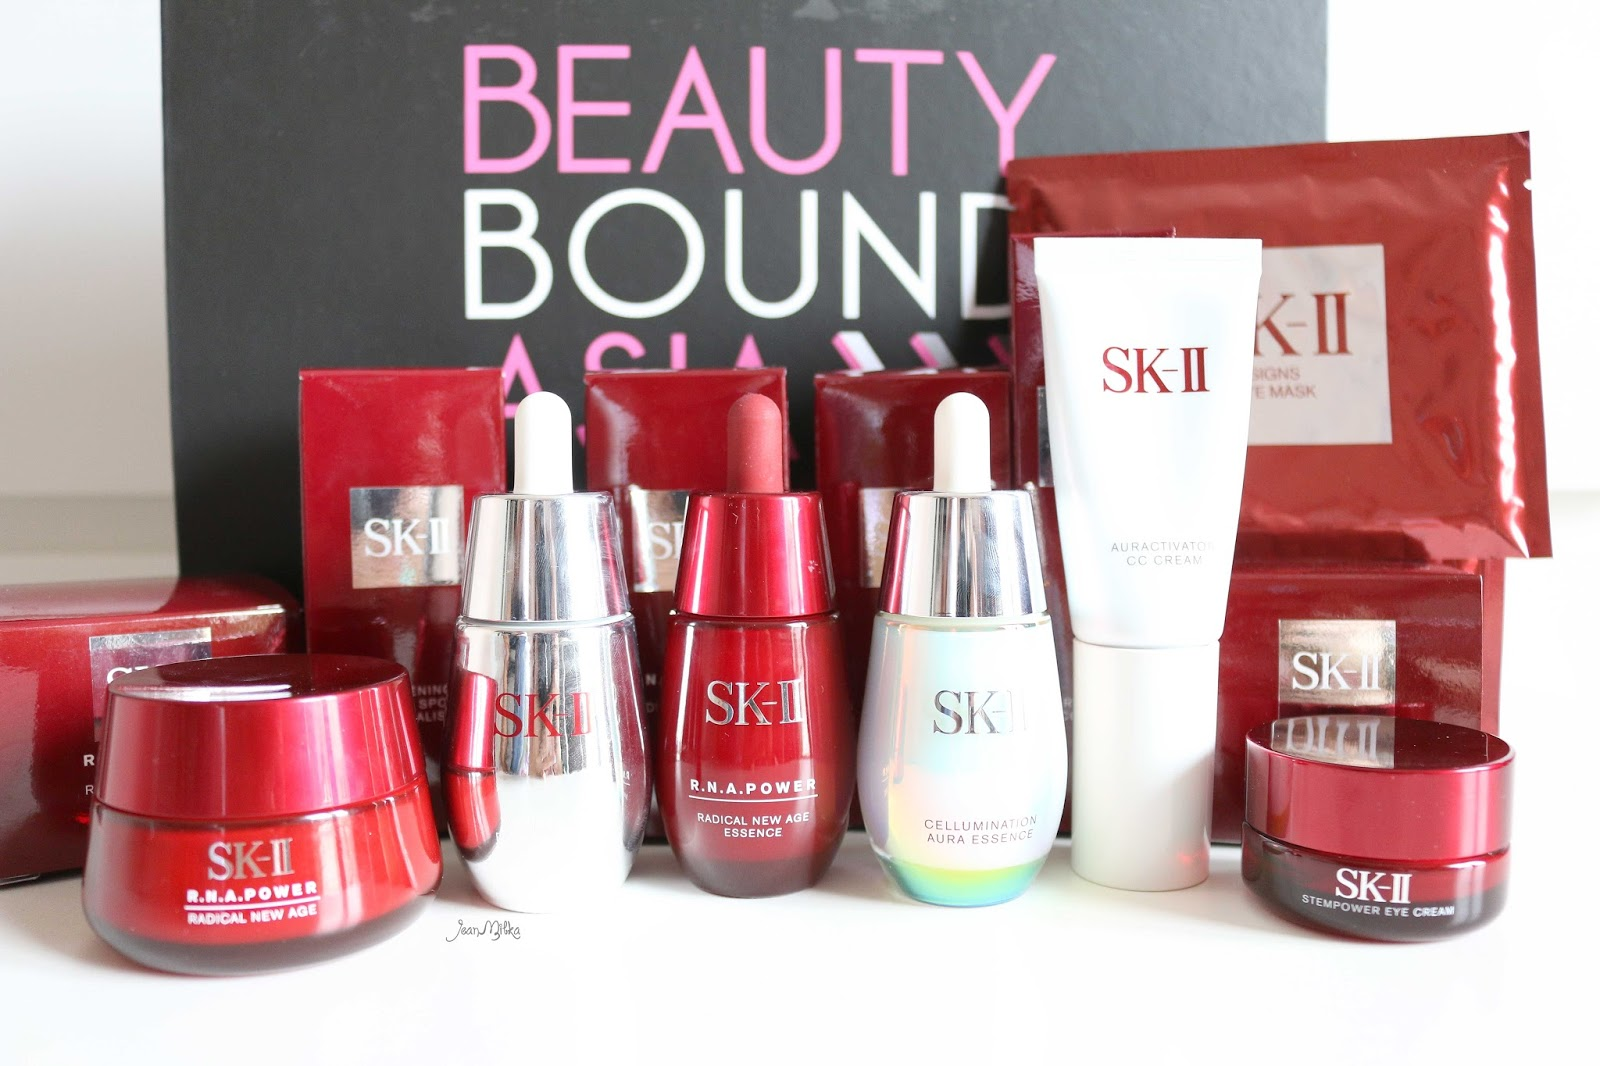 beauty bound asia, beauty, youtuber, unboxing, national finalist, jakarta, vlogger, beauty guru, sk ii, skin care